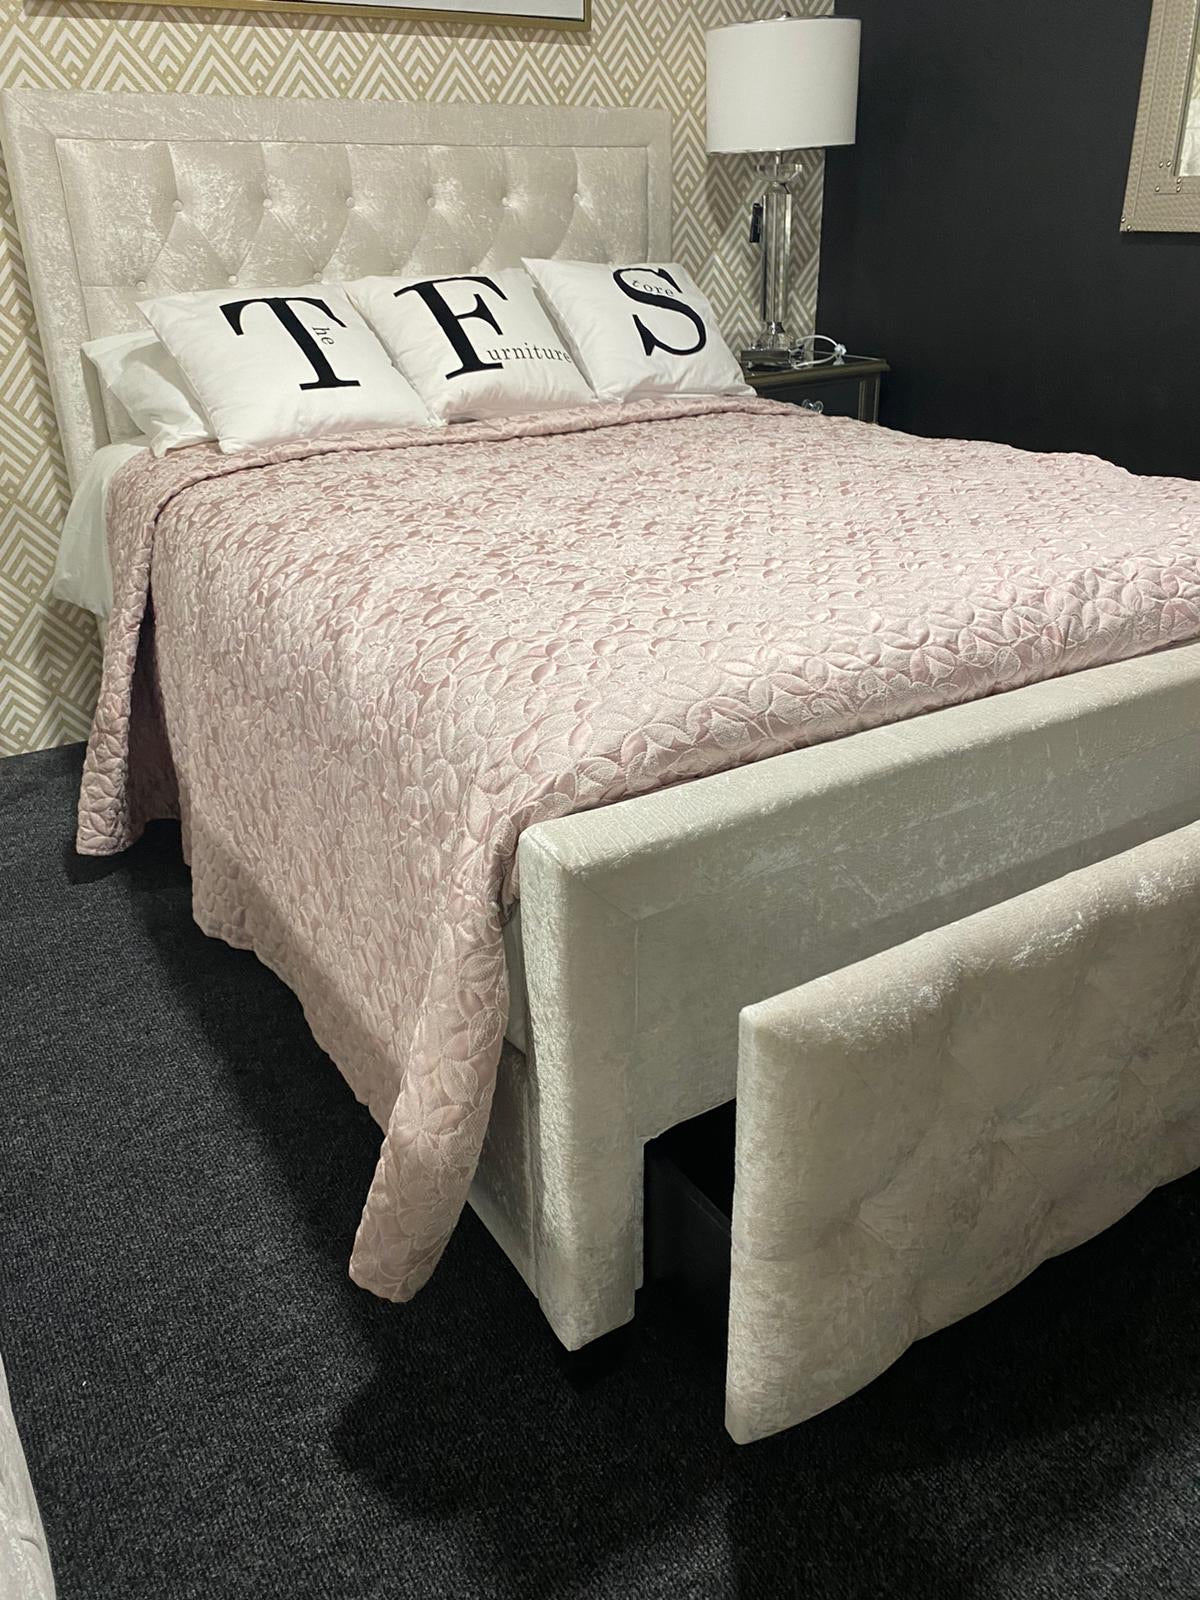 Carolina Storage Bed Champagne King SOLD OUT